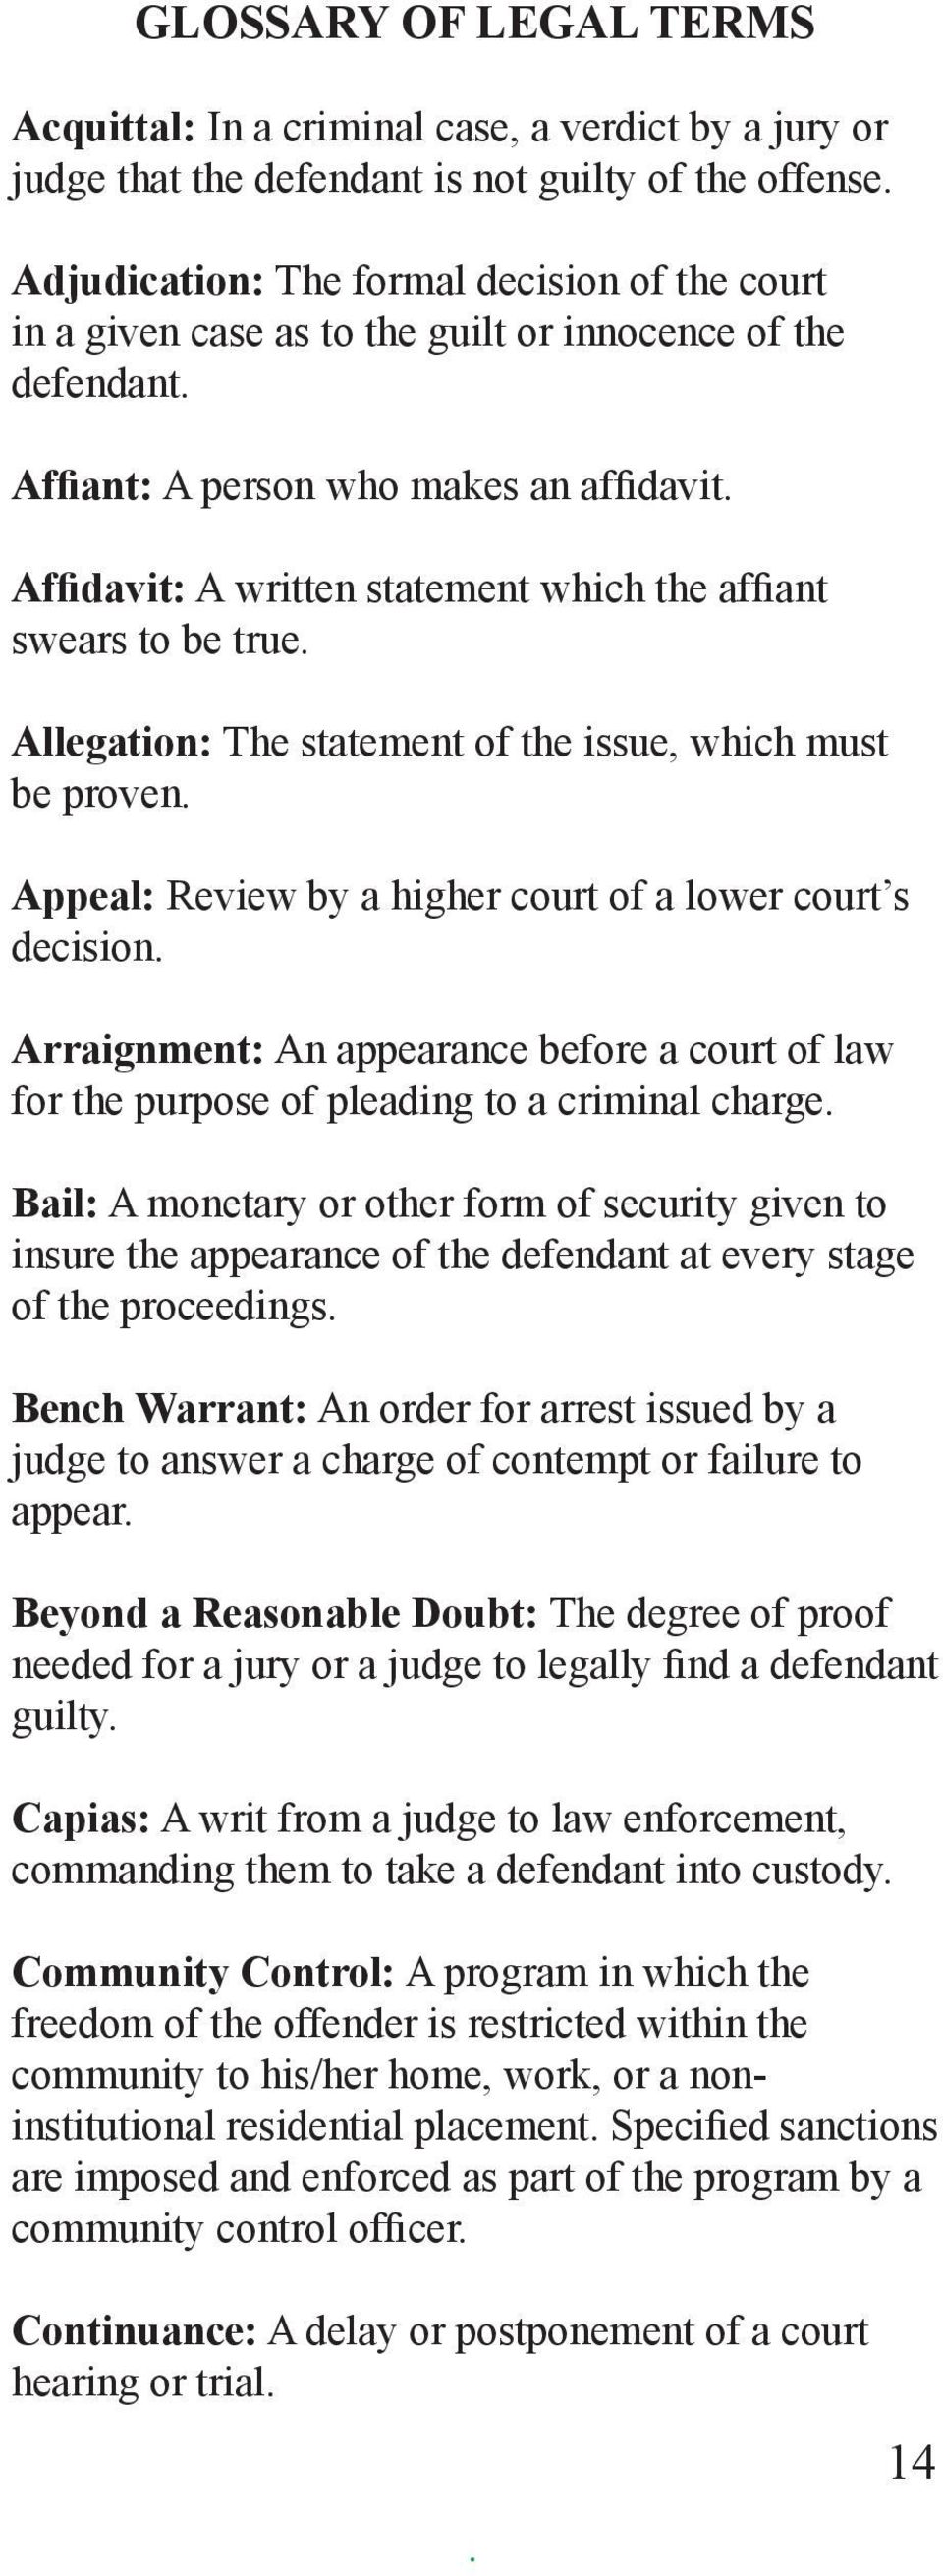 must be proven Appeal: Review by a higher court of a lower court s decision Arraignment: An appearance before a court of law for the purpose of pleading to a criminal charge Bail: A monetary or other